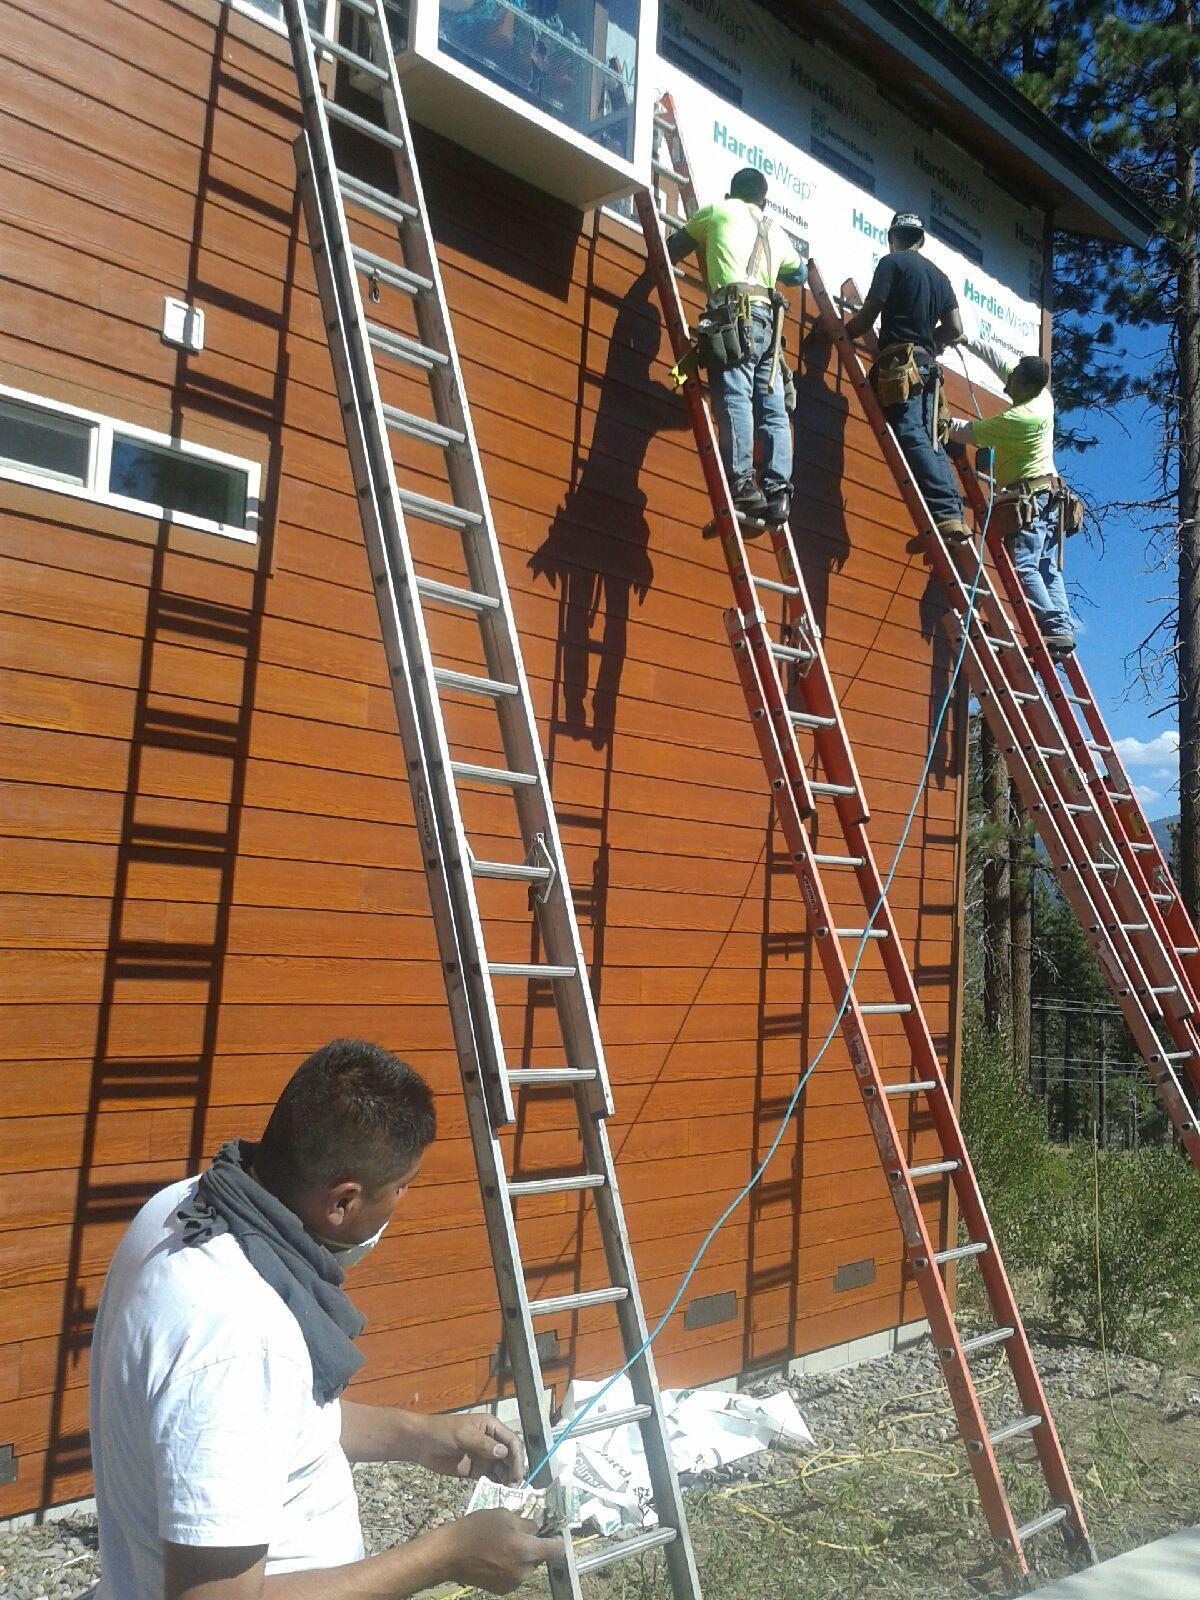 Installers Repair Damaged Siding  - Greenlight Building Services, Inc.